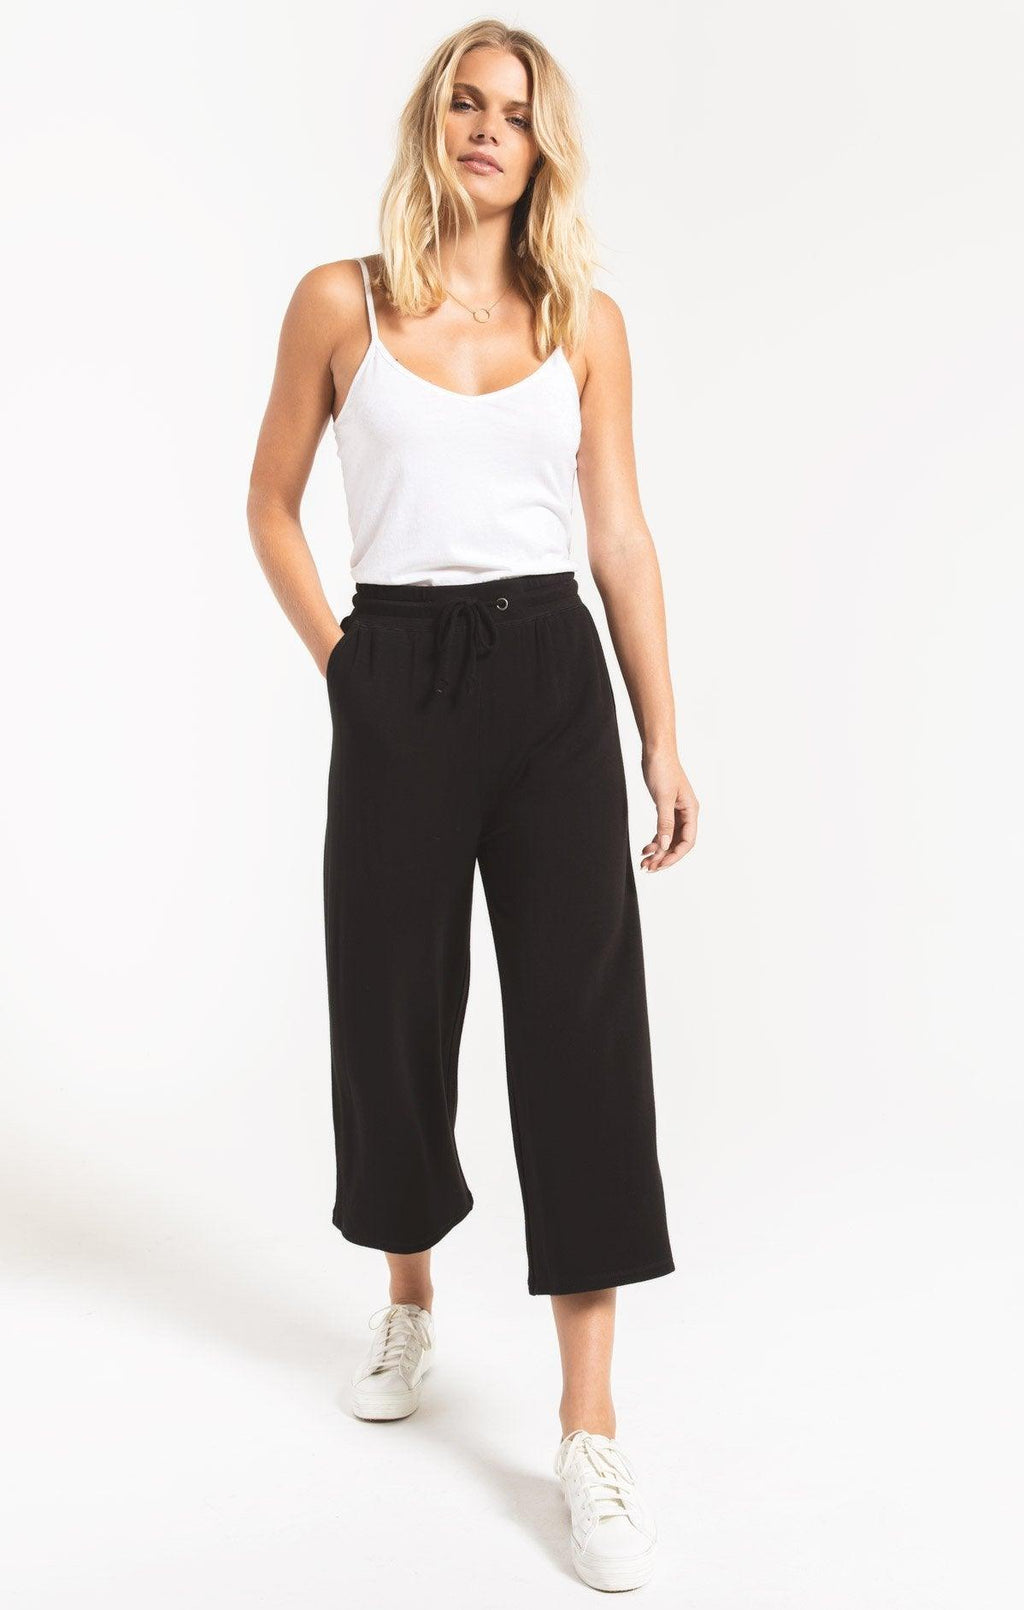 Z Supply black premium cropped pant